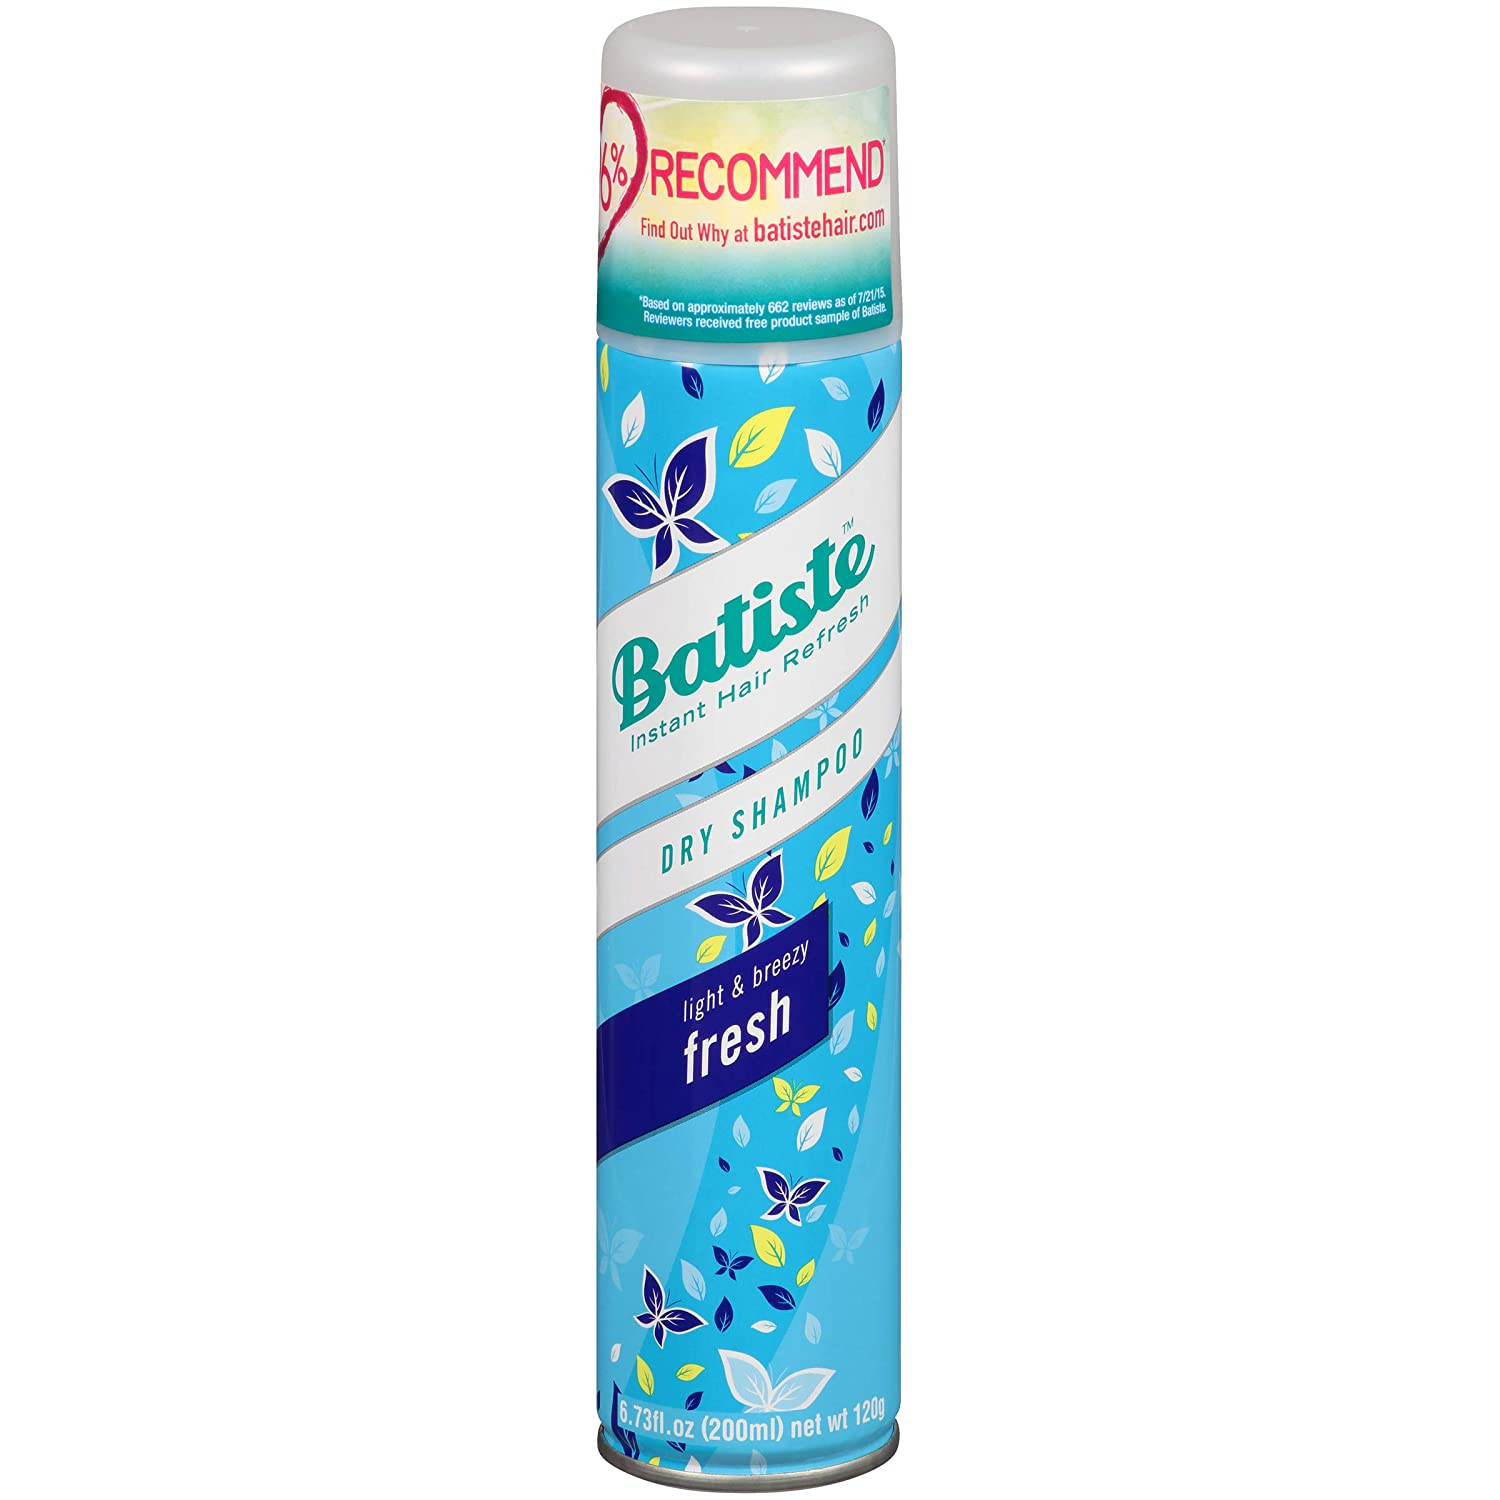 Batiste - Dry Shampoo Fresh - 200ml 87076